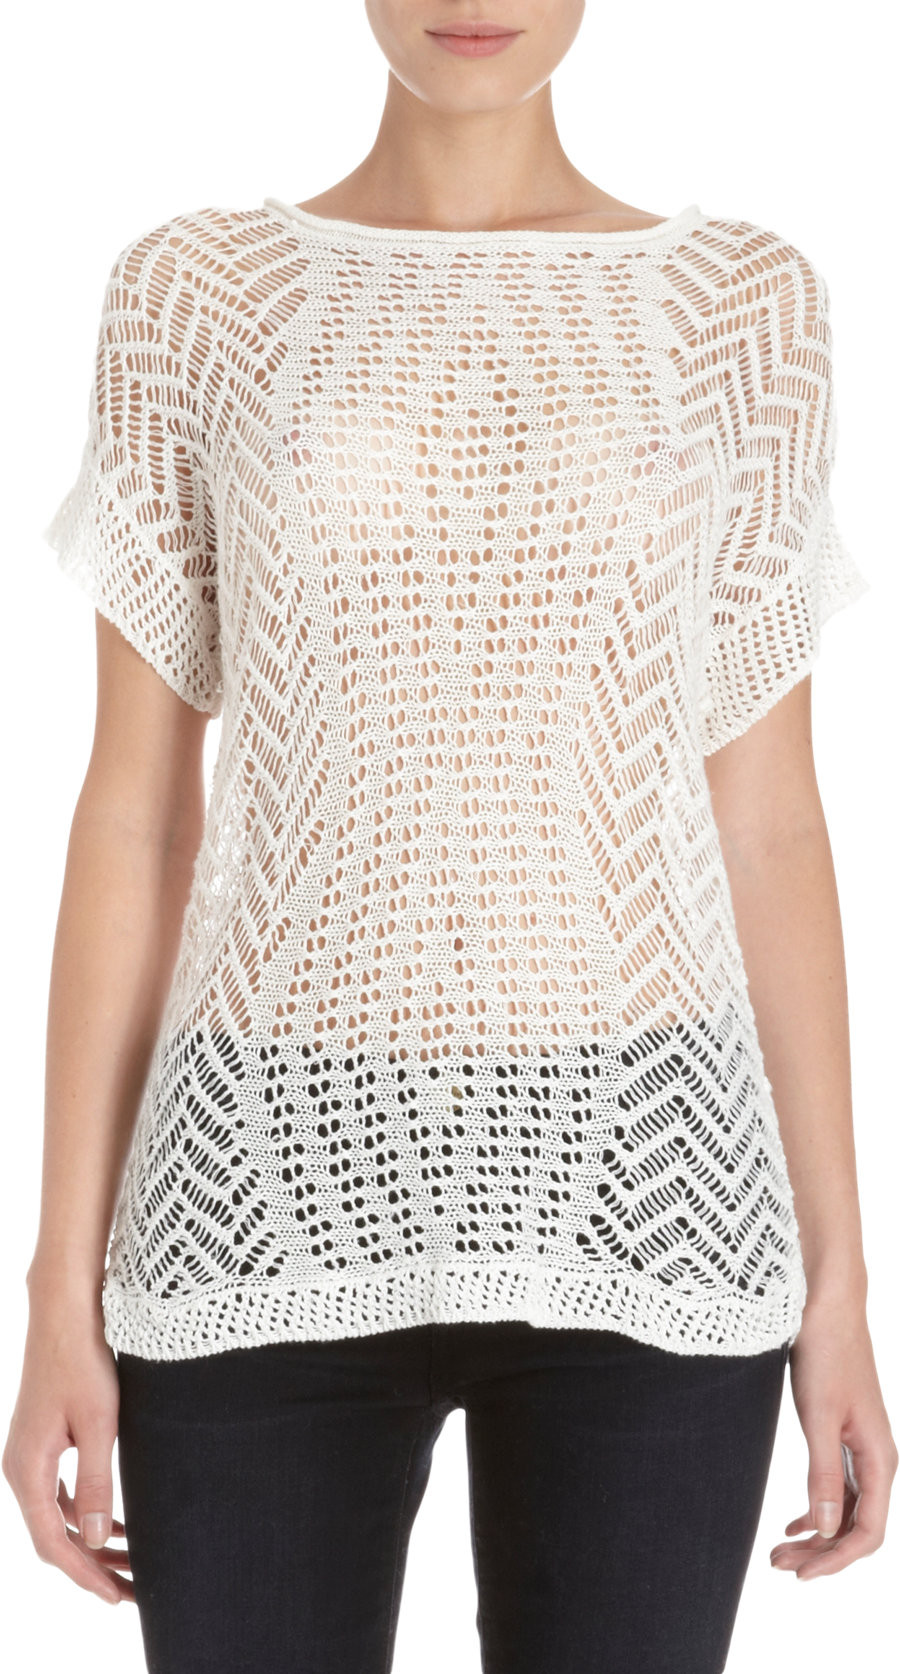 Thakoon Open Crochet Knit Short Sleeve Sweater in White